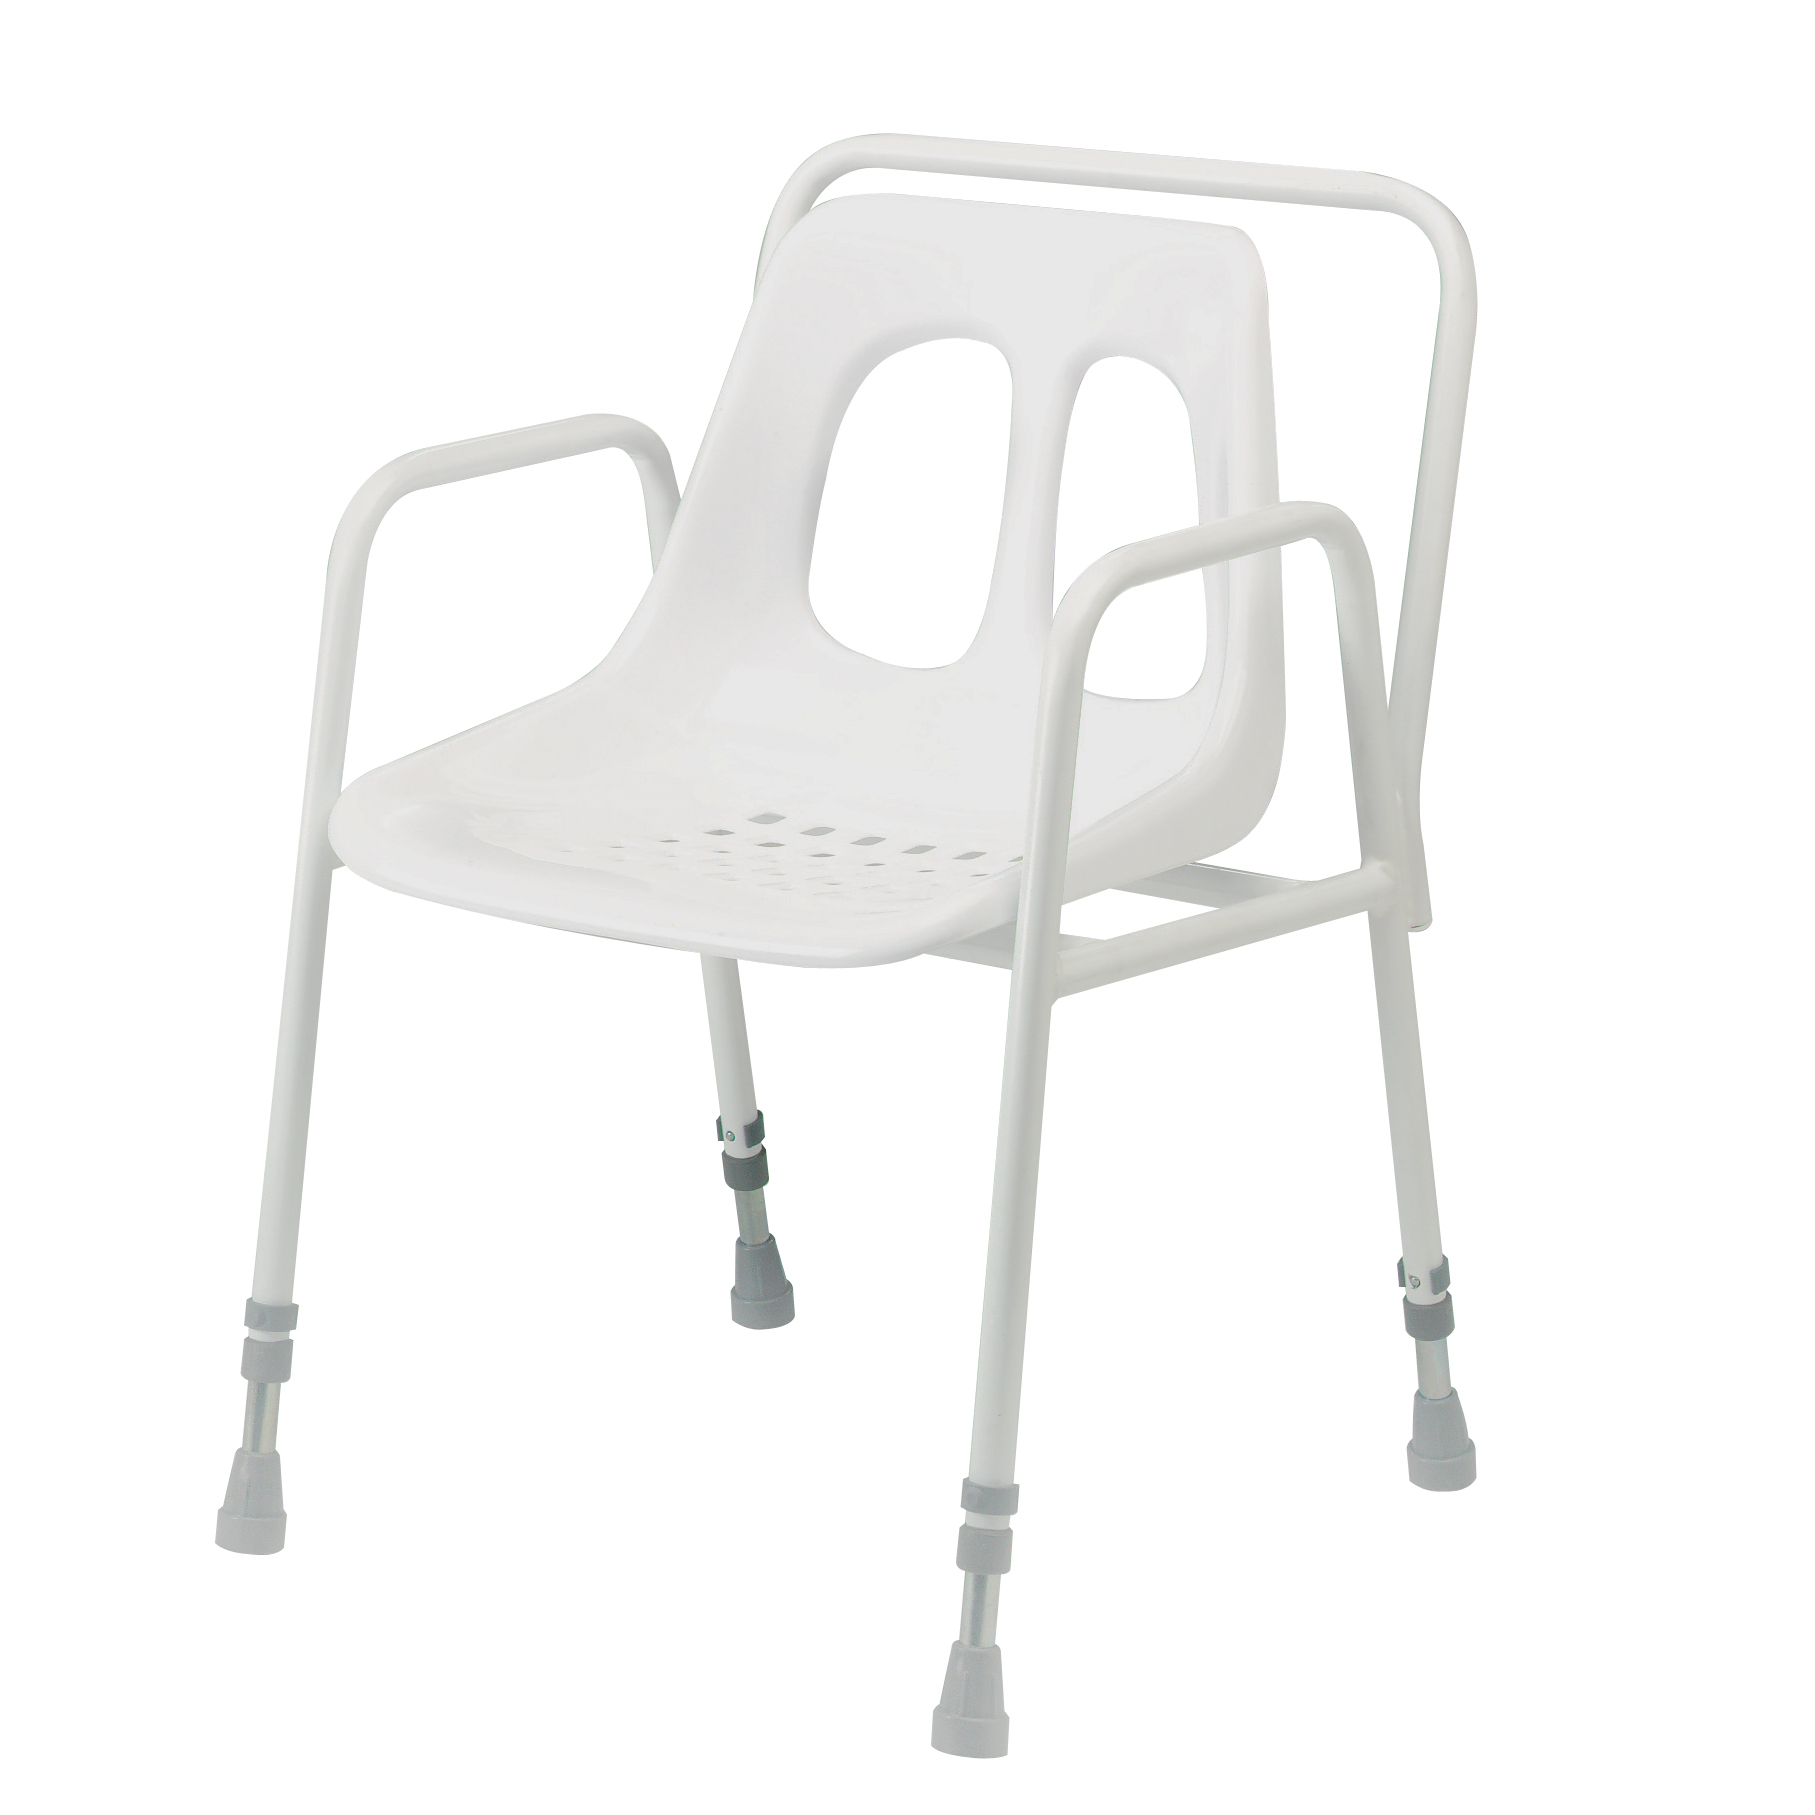 Adjustable Height Stationary Shower Chair 4553 Ex